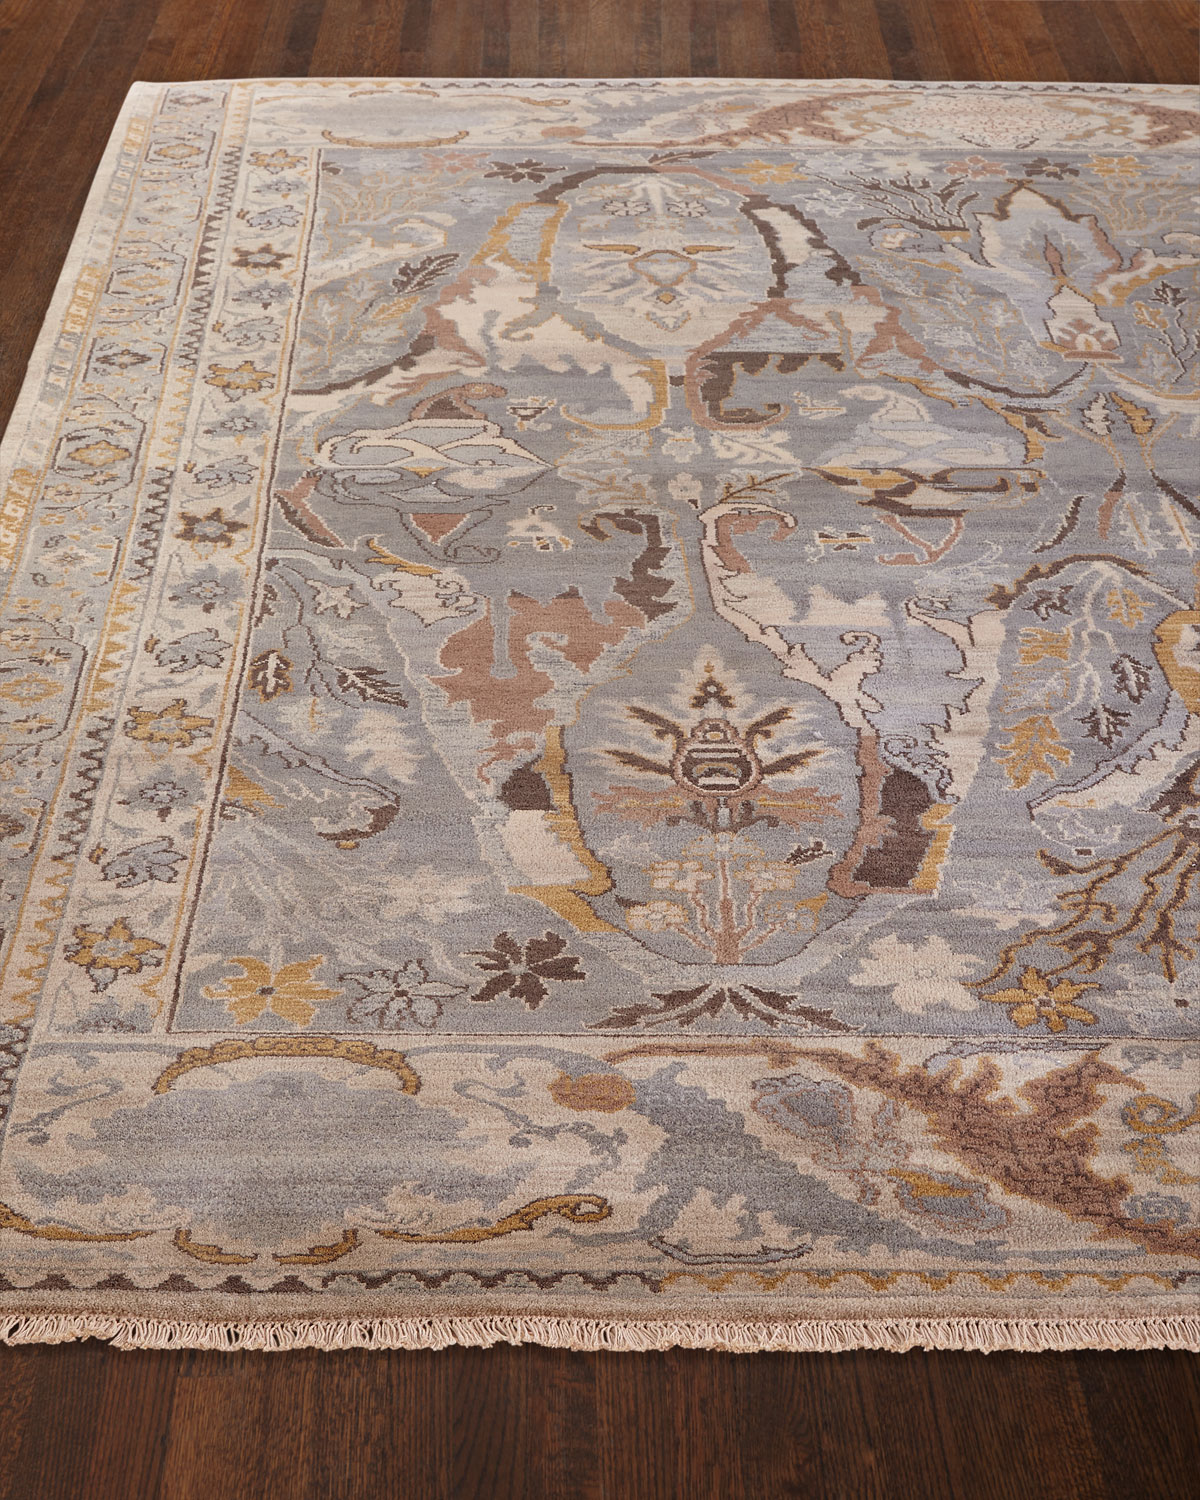 Exquisite Rugs Amata Hand-Knotted Rug, 9' x 12'